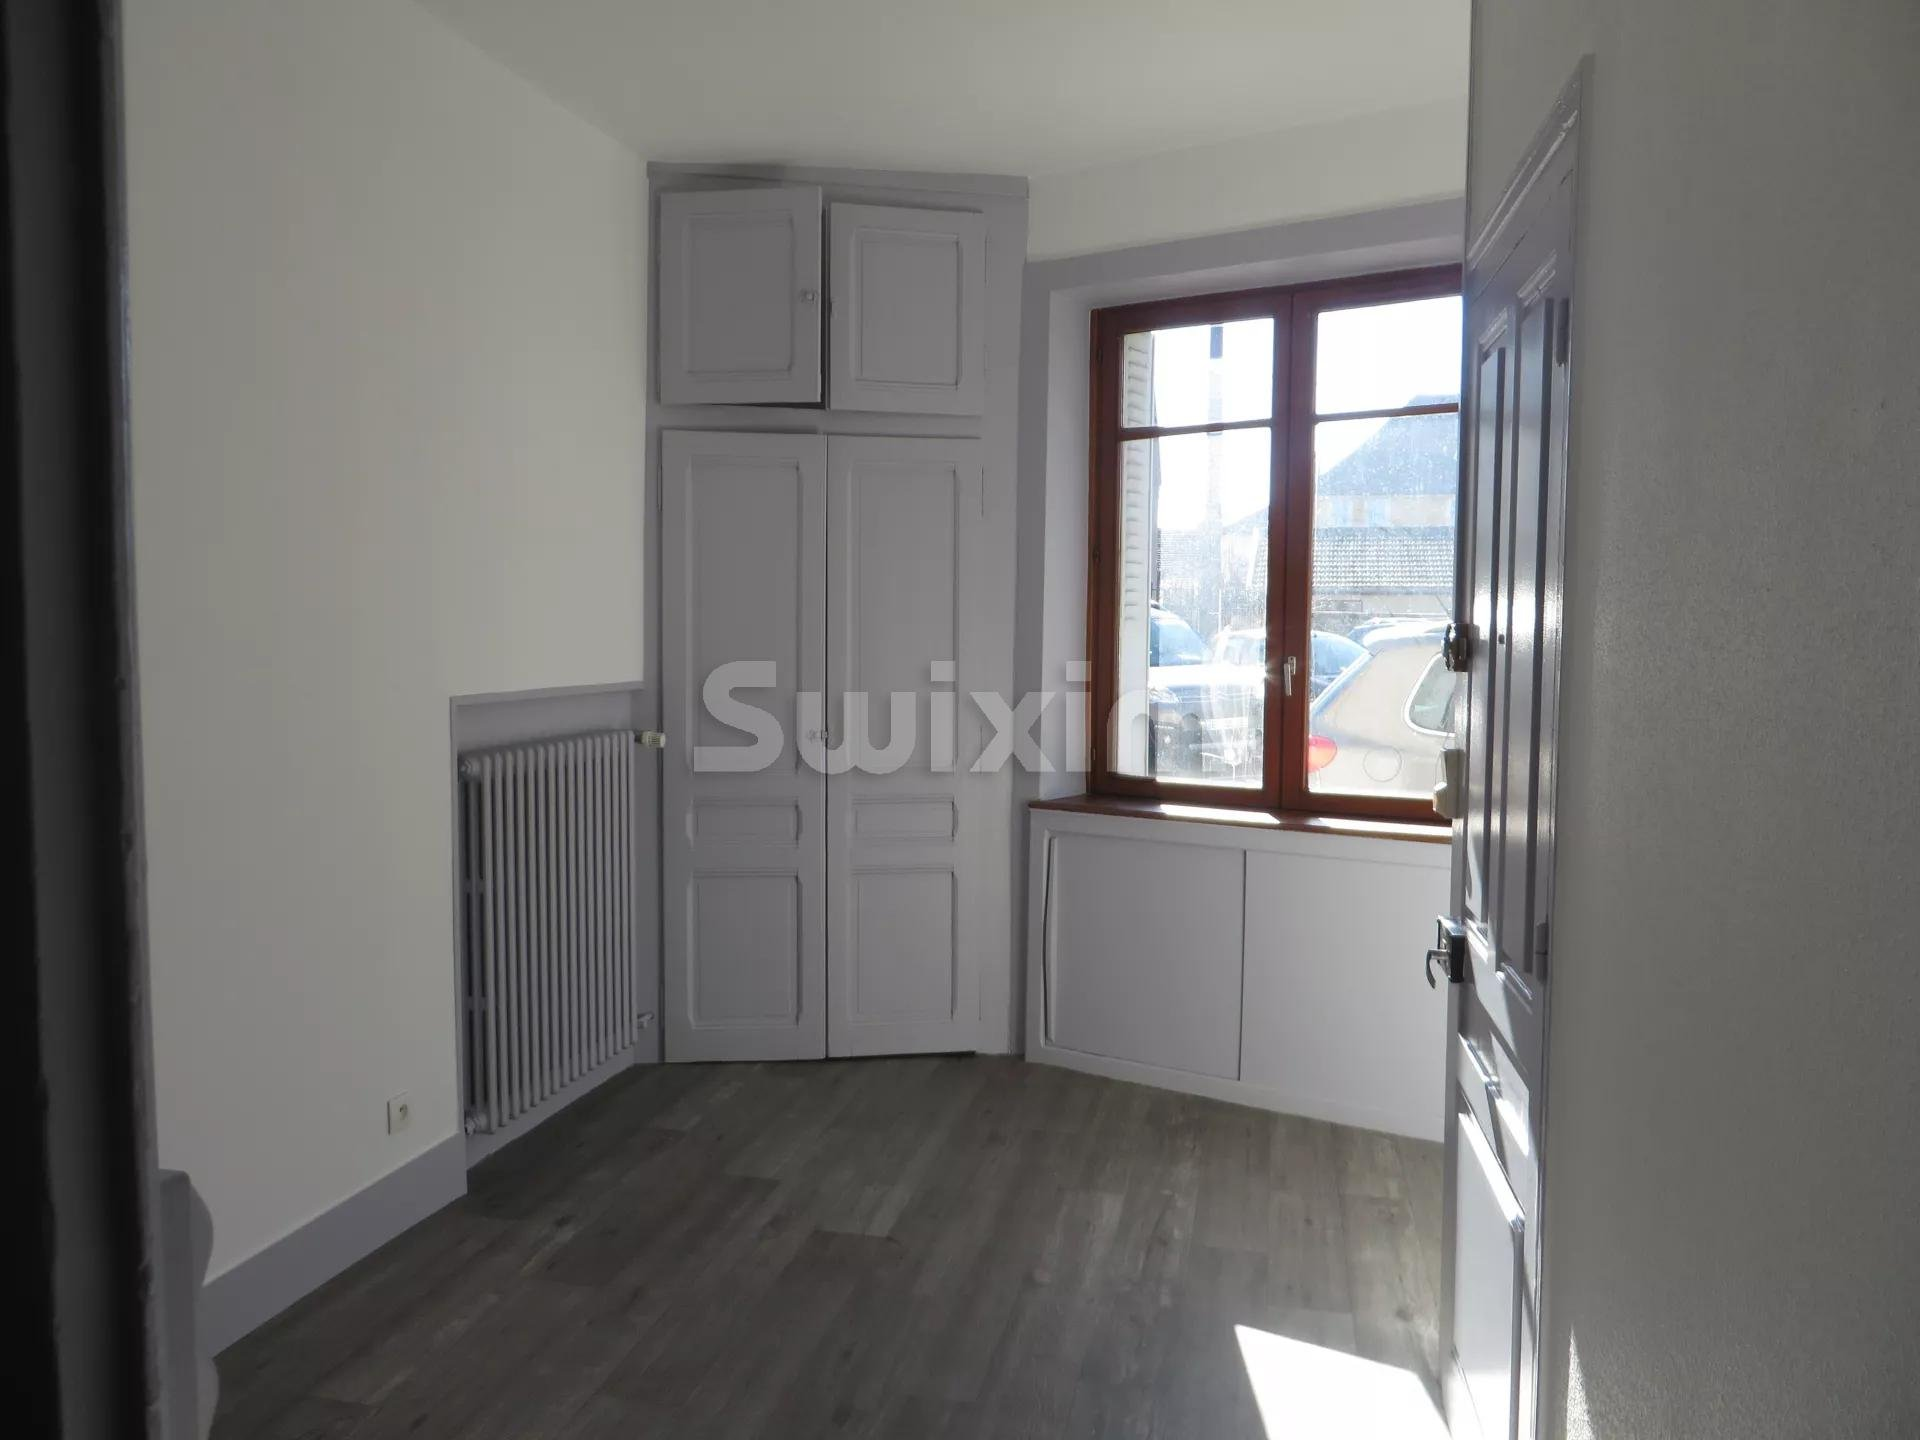 Location Appartement - Champagnole